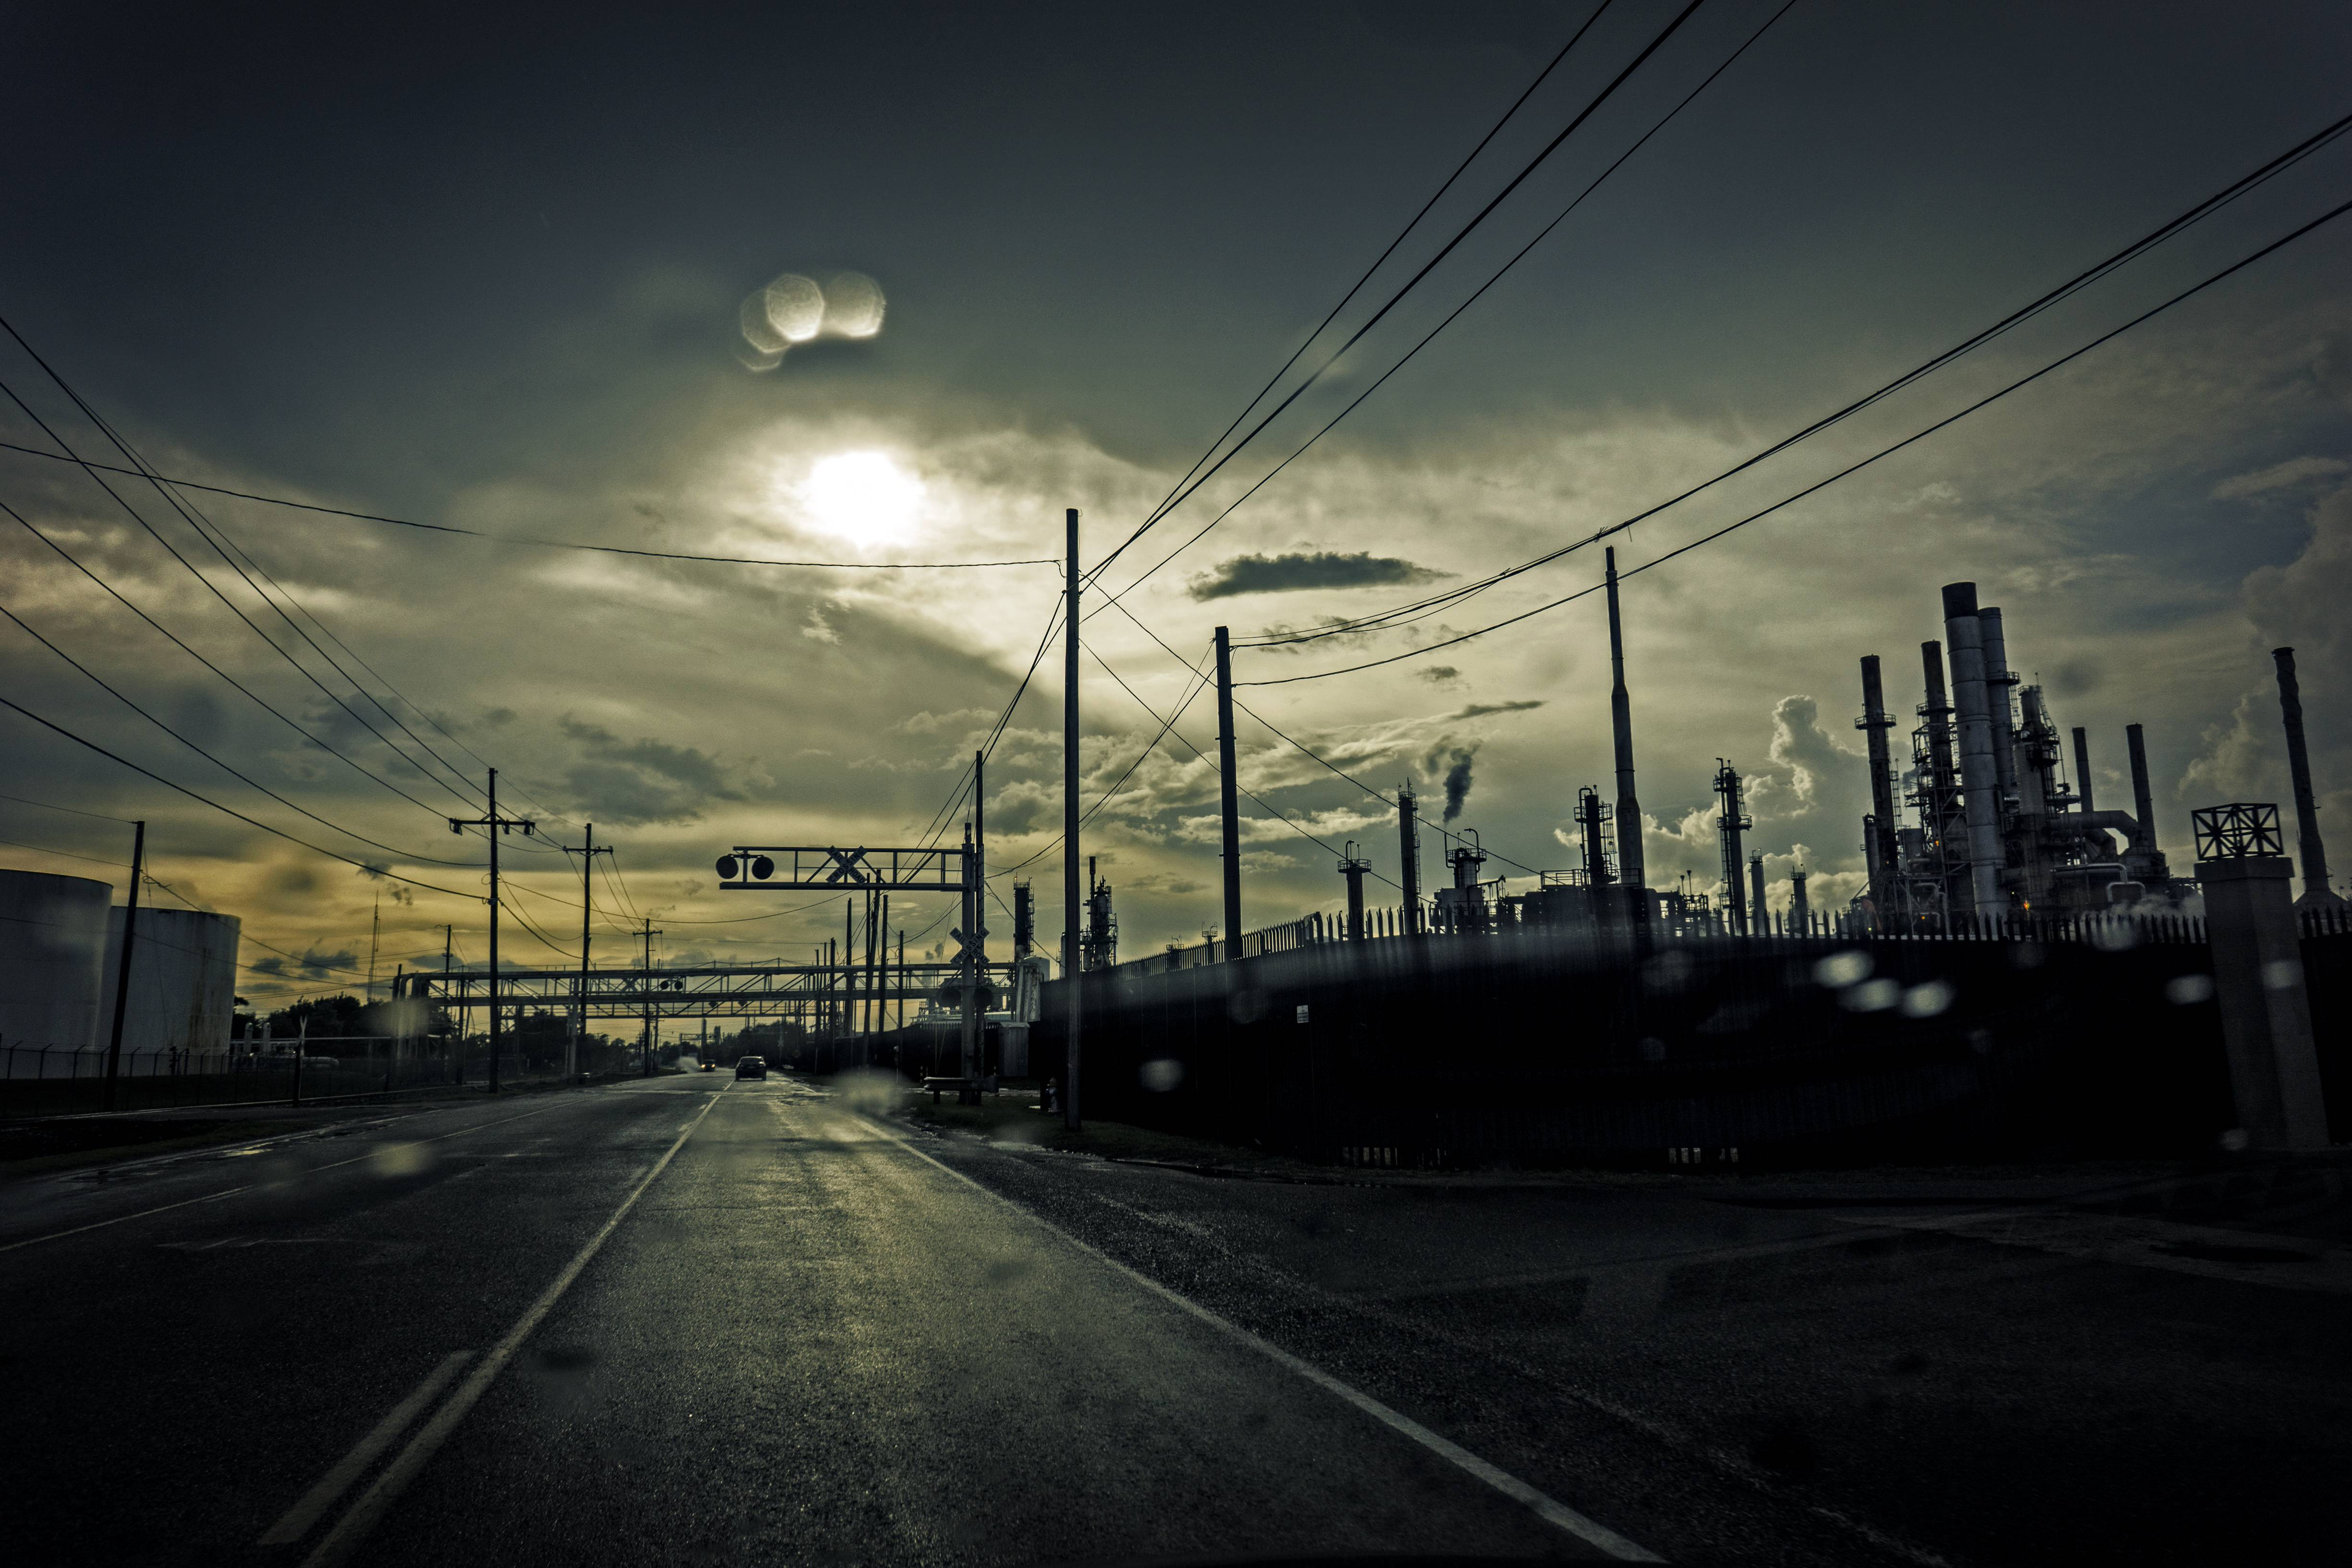 There are lots of oil refineries in Southeast Louisiana. Between their strangeness and the weather, the picture became very, very moody.